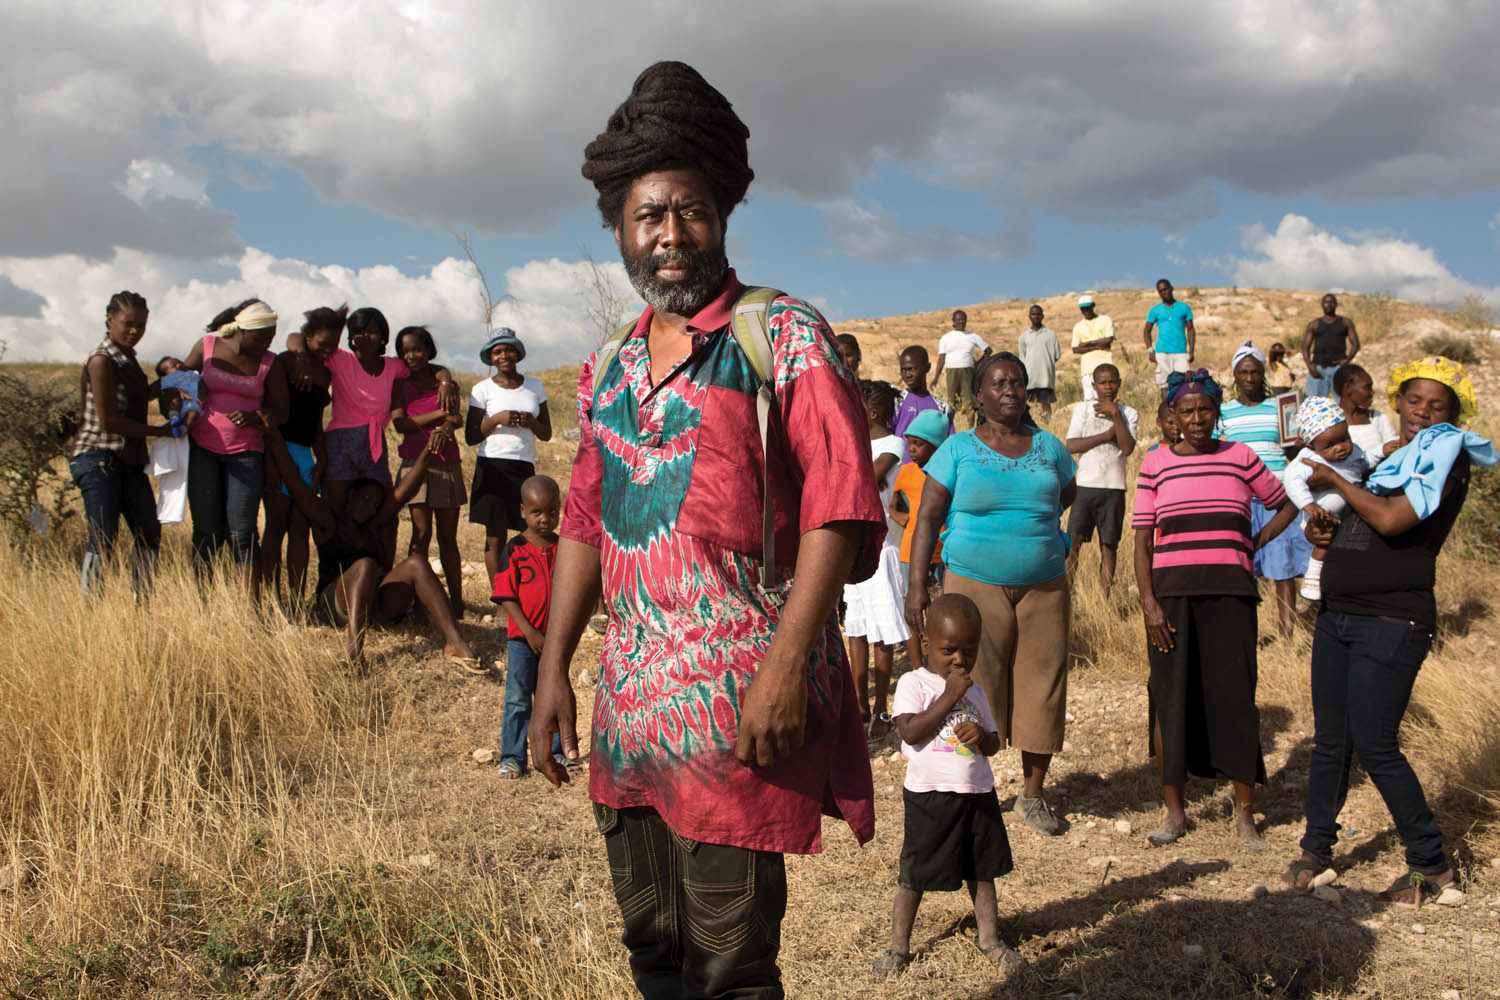 Mona Augustin at the site in Canaan where, in 2012, 126 families bought land rights in order to establish a camp they called Mozayik. Later, a competing, more powerful claimant forced them to move. Photo by Allison Shelley